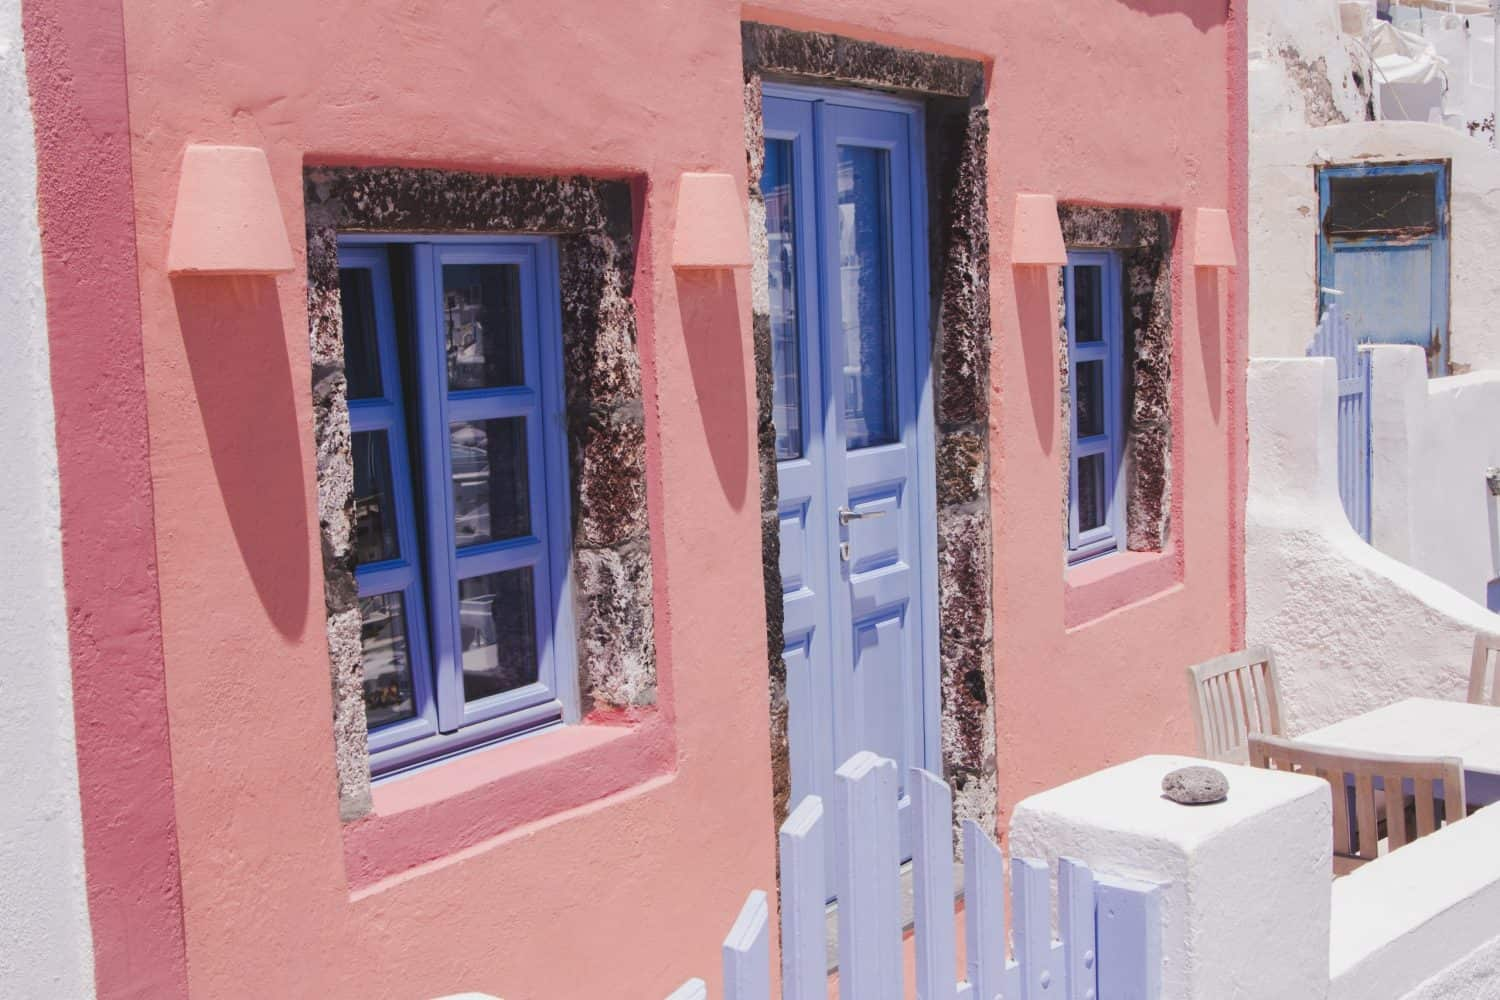 A pink and blue house in Santorini, Greece